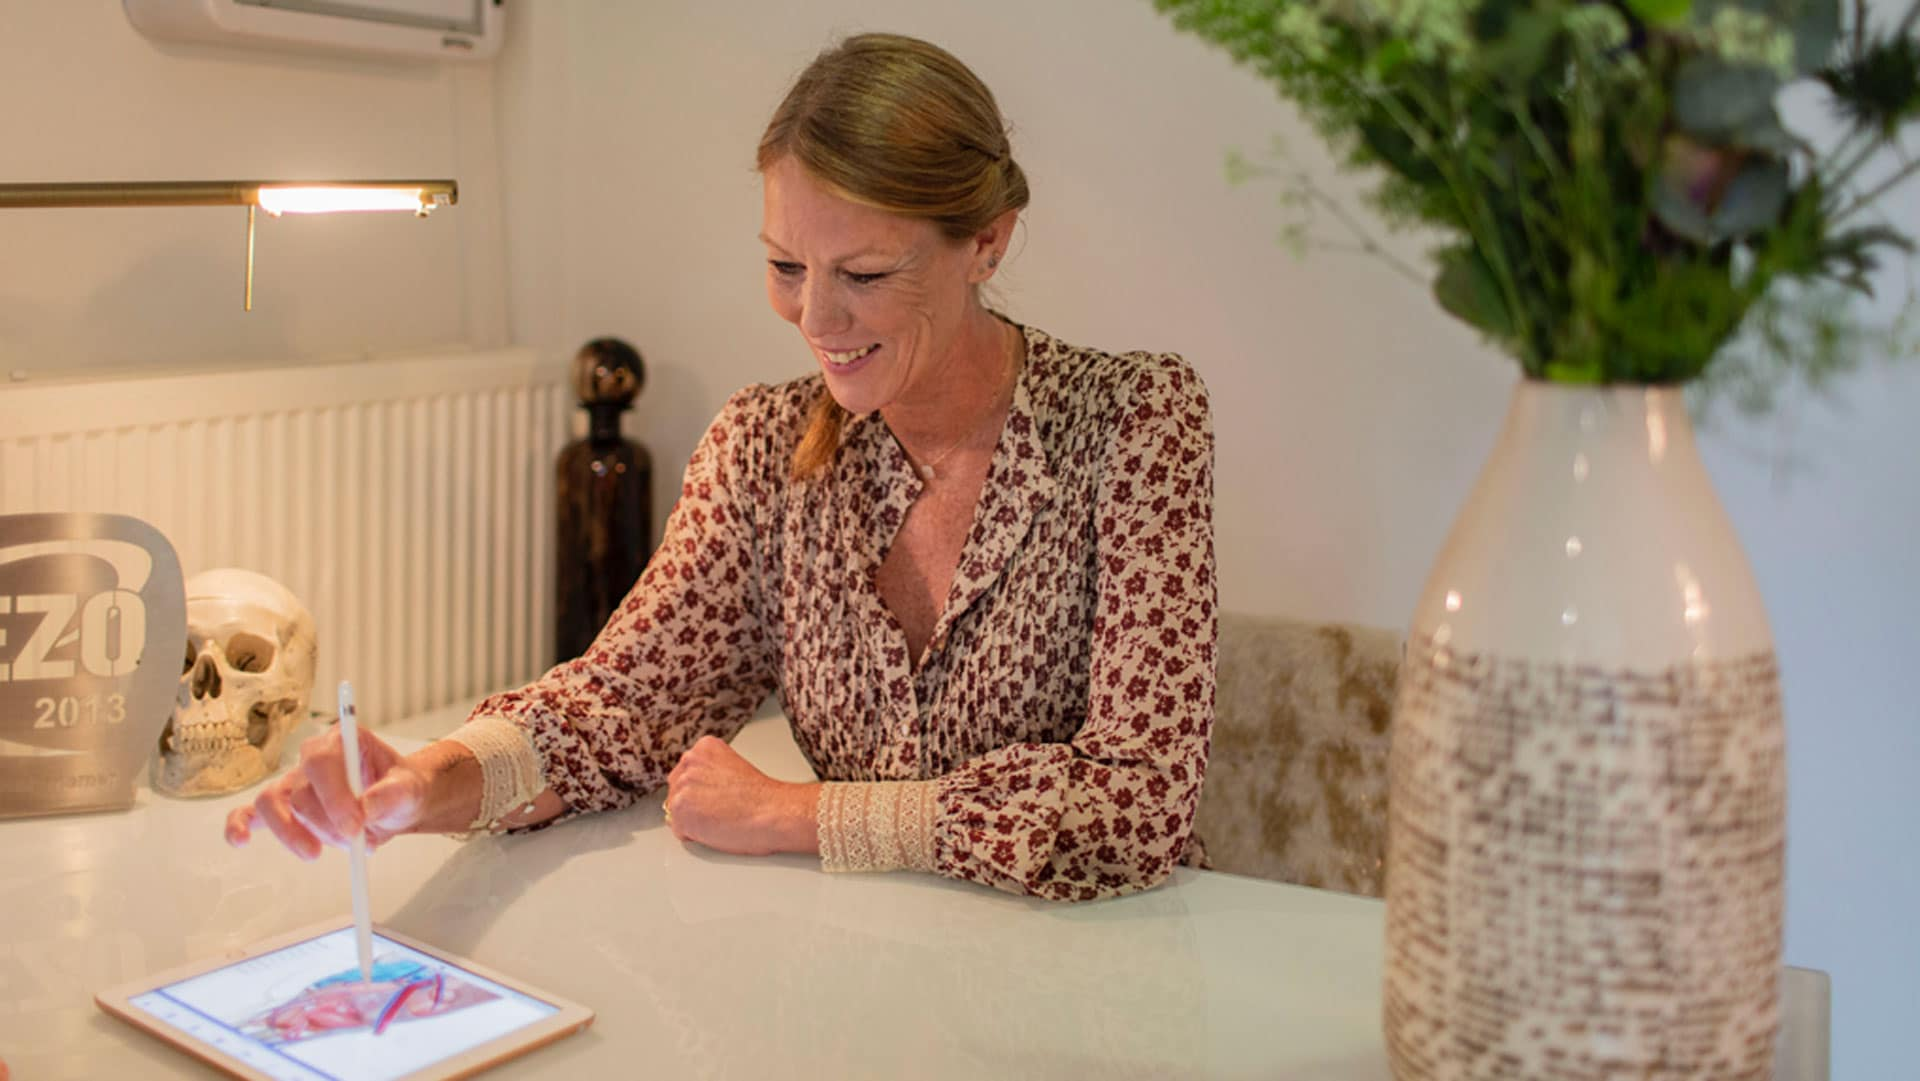 Osteopaat Colette Peeters anamnese